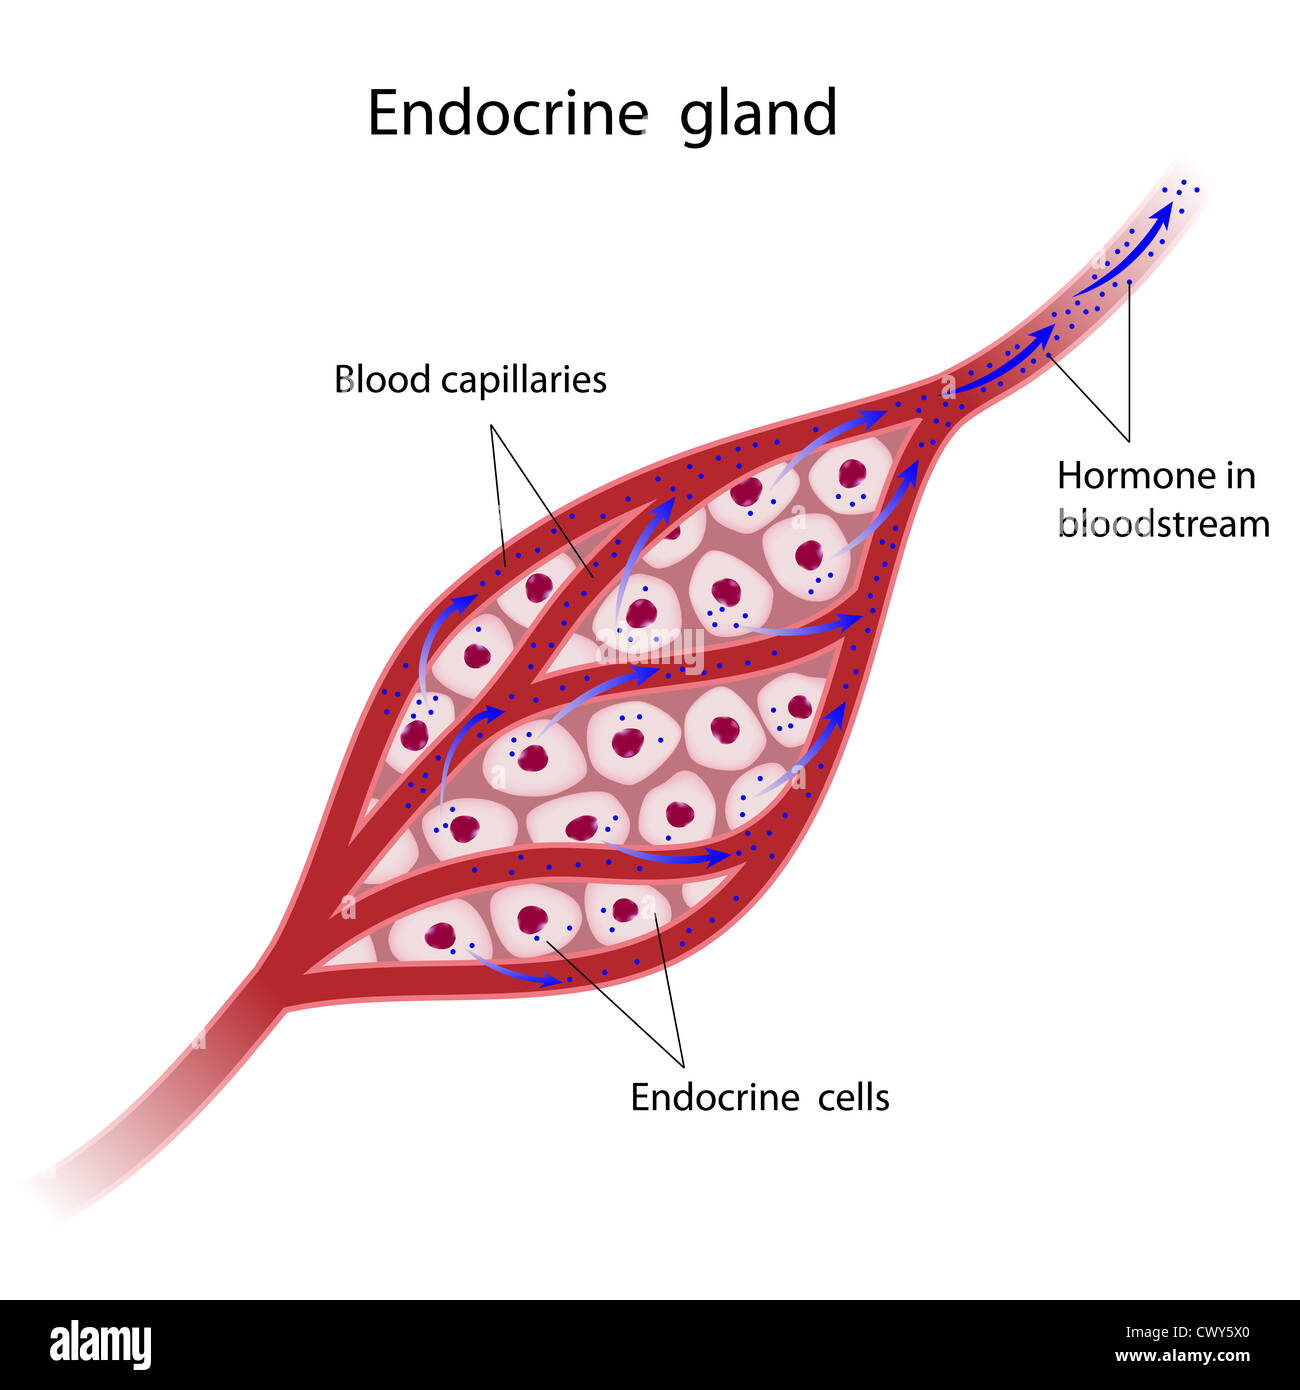 Endocrine Gland Cut Out Stock Images & Pictures - Alamy